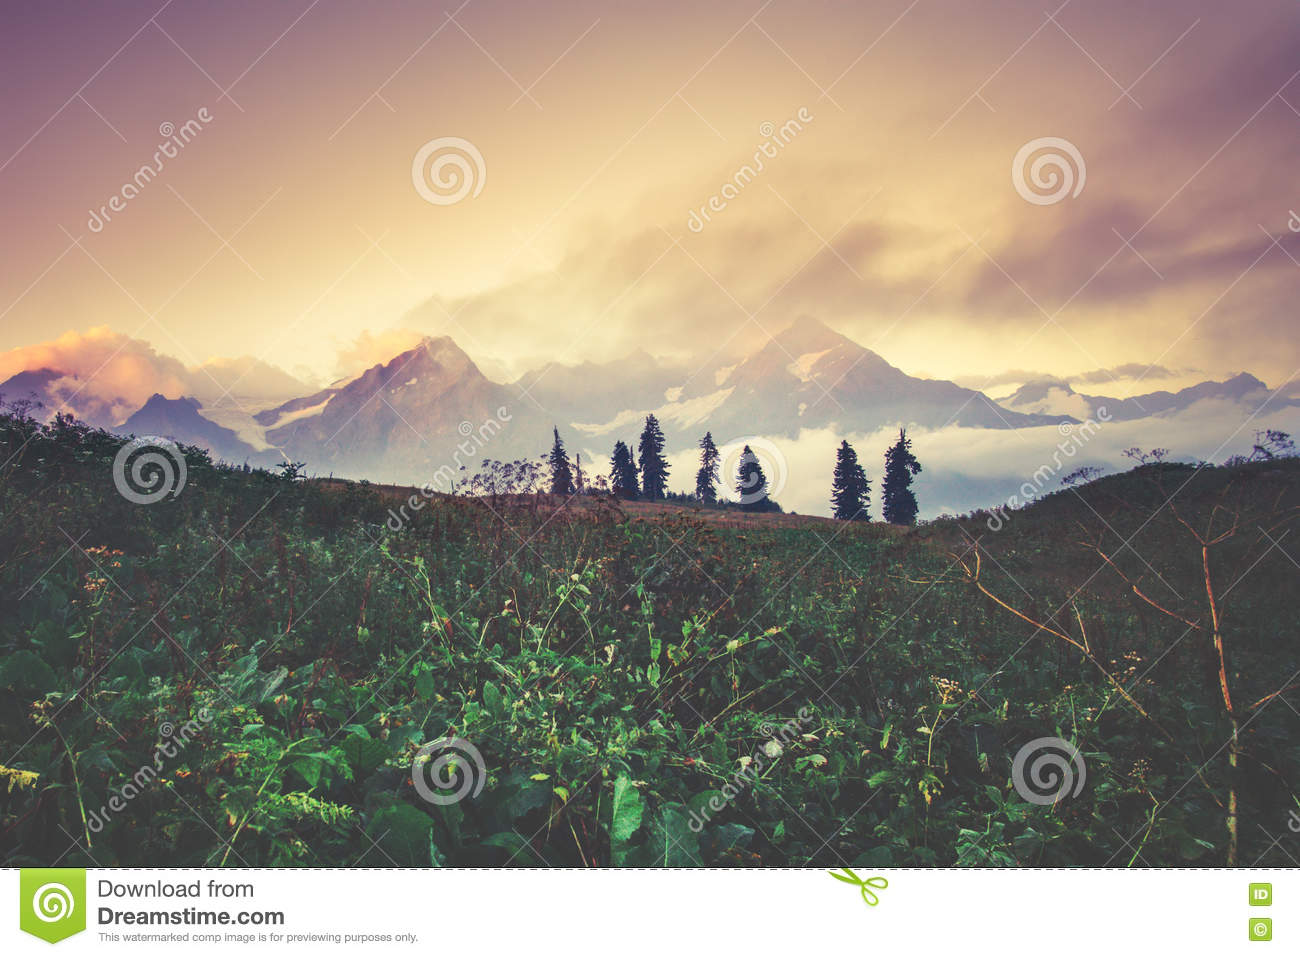 Sunset Mountains Landscape Travel Serene Scenic View Stock ...